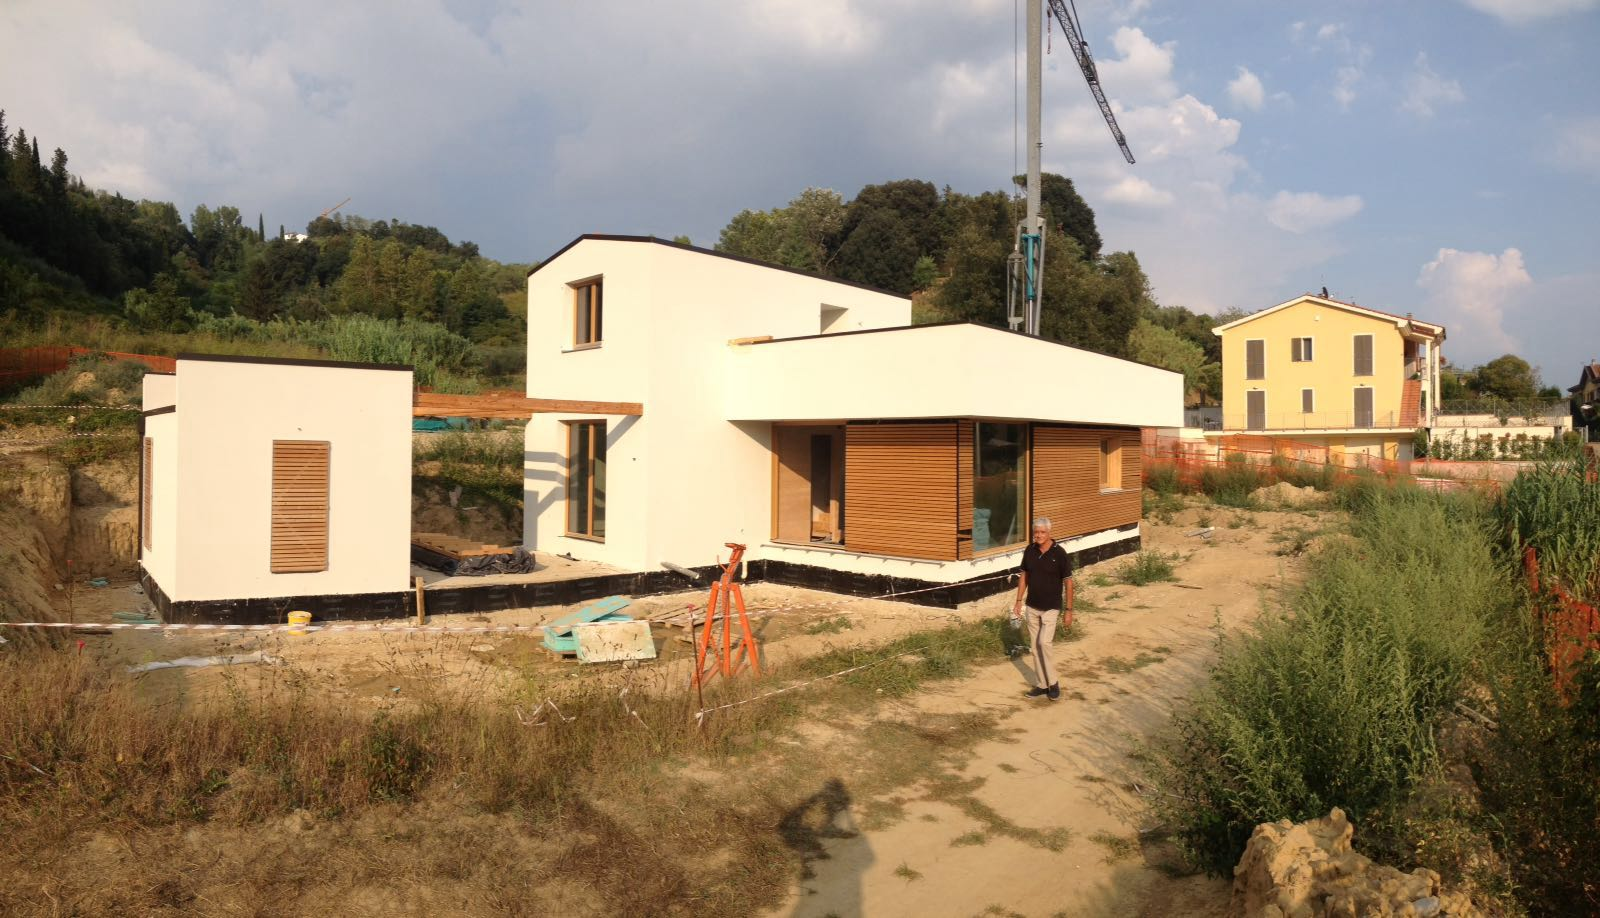 A new passive house for sale in Italy!